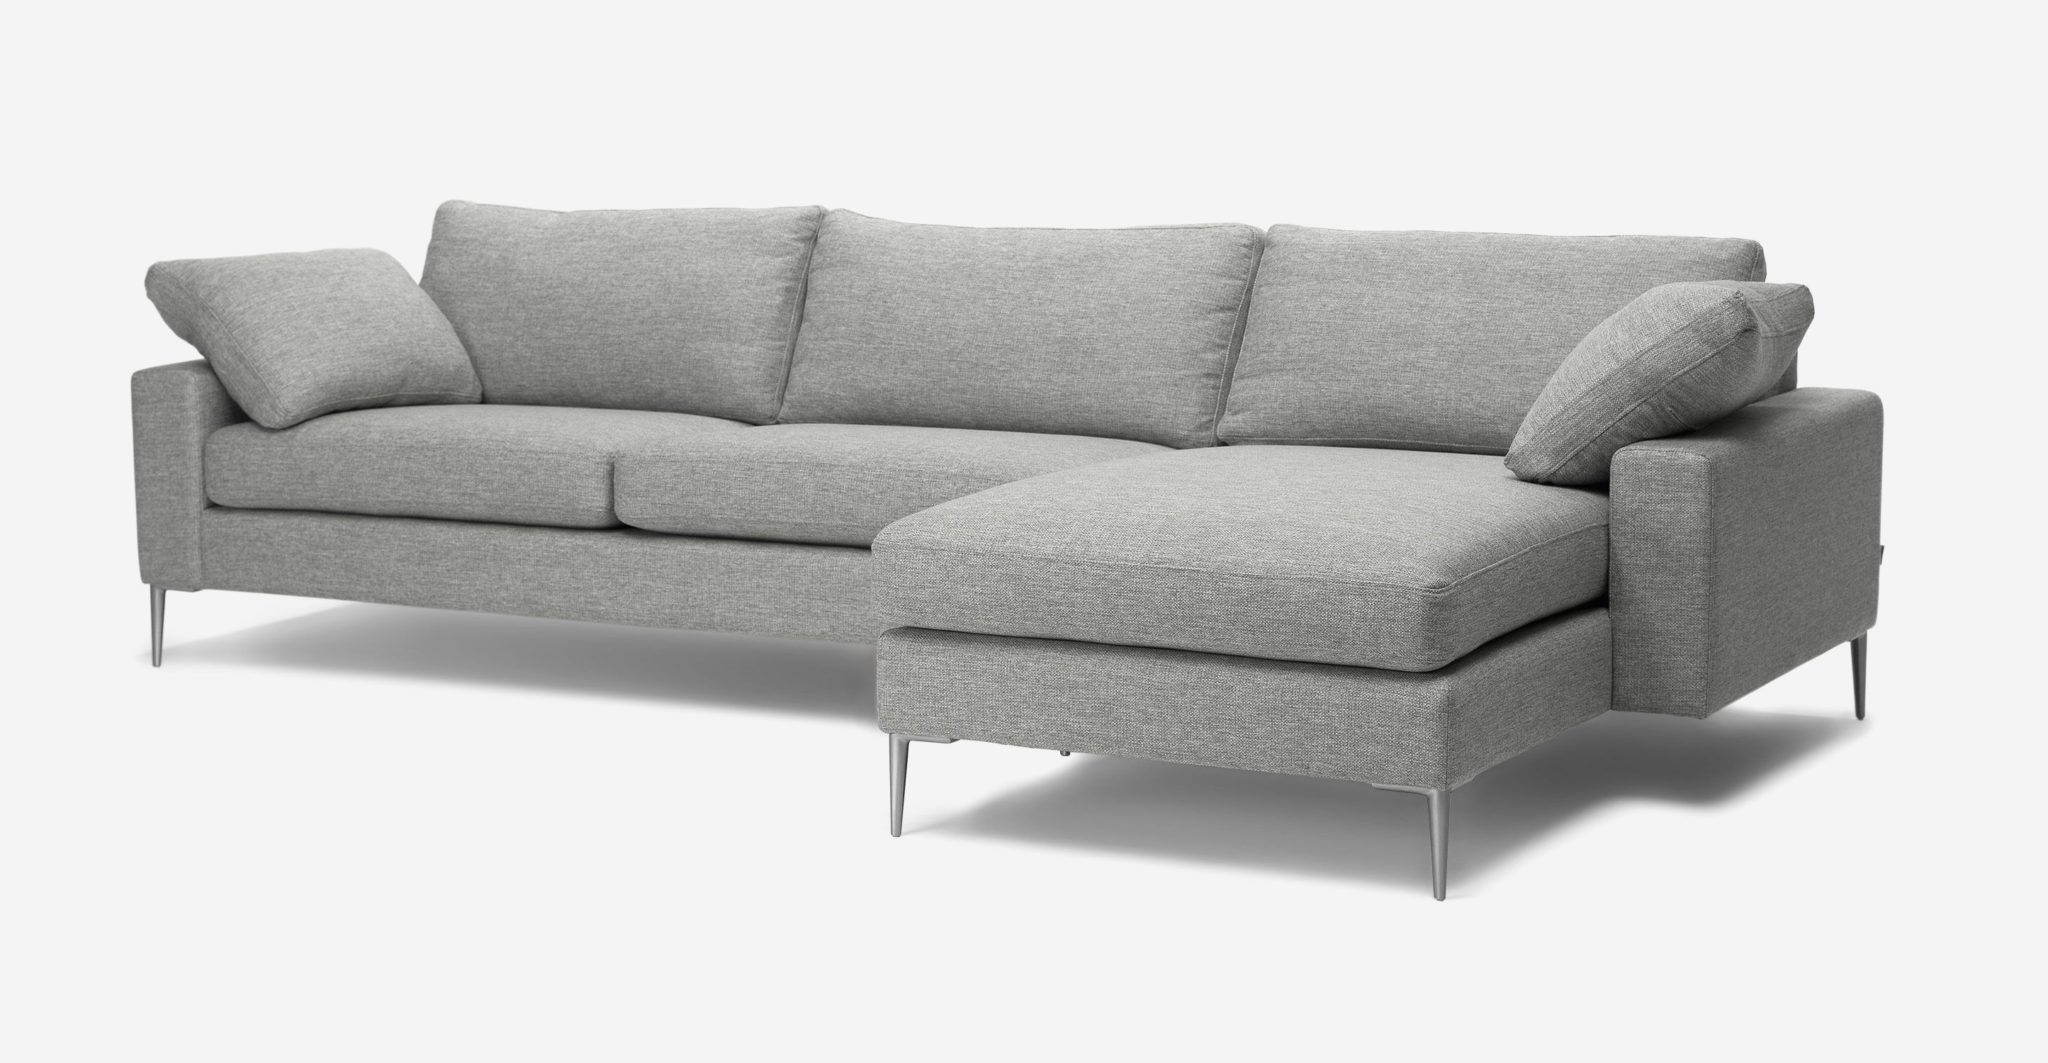 Choose Best Quality Living Room Furniture Dial 01935 412811